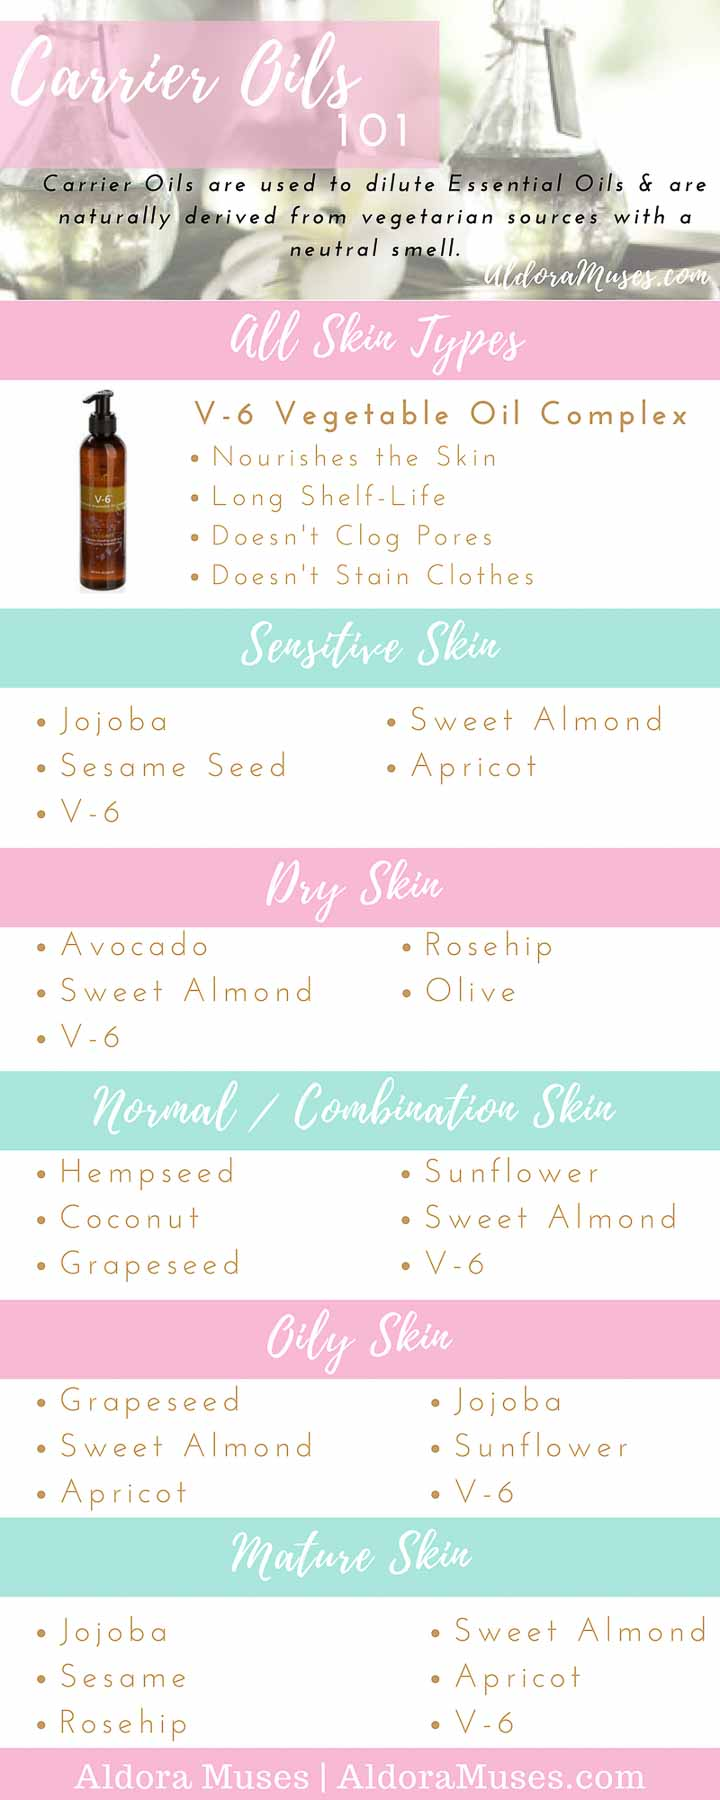 Essential Oils, Natural Remedies, Toxic-Free, Natural Healing, Natural Cure, Young Living, Carrier Oil, V-6 Vegetable Oil Complex